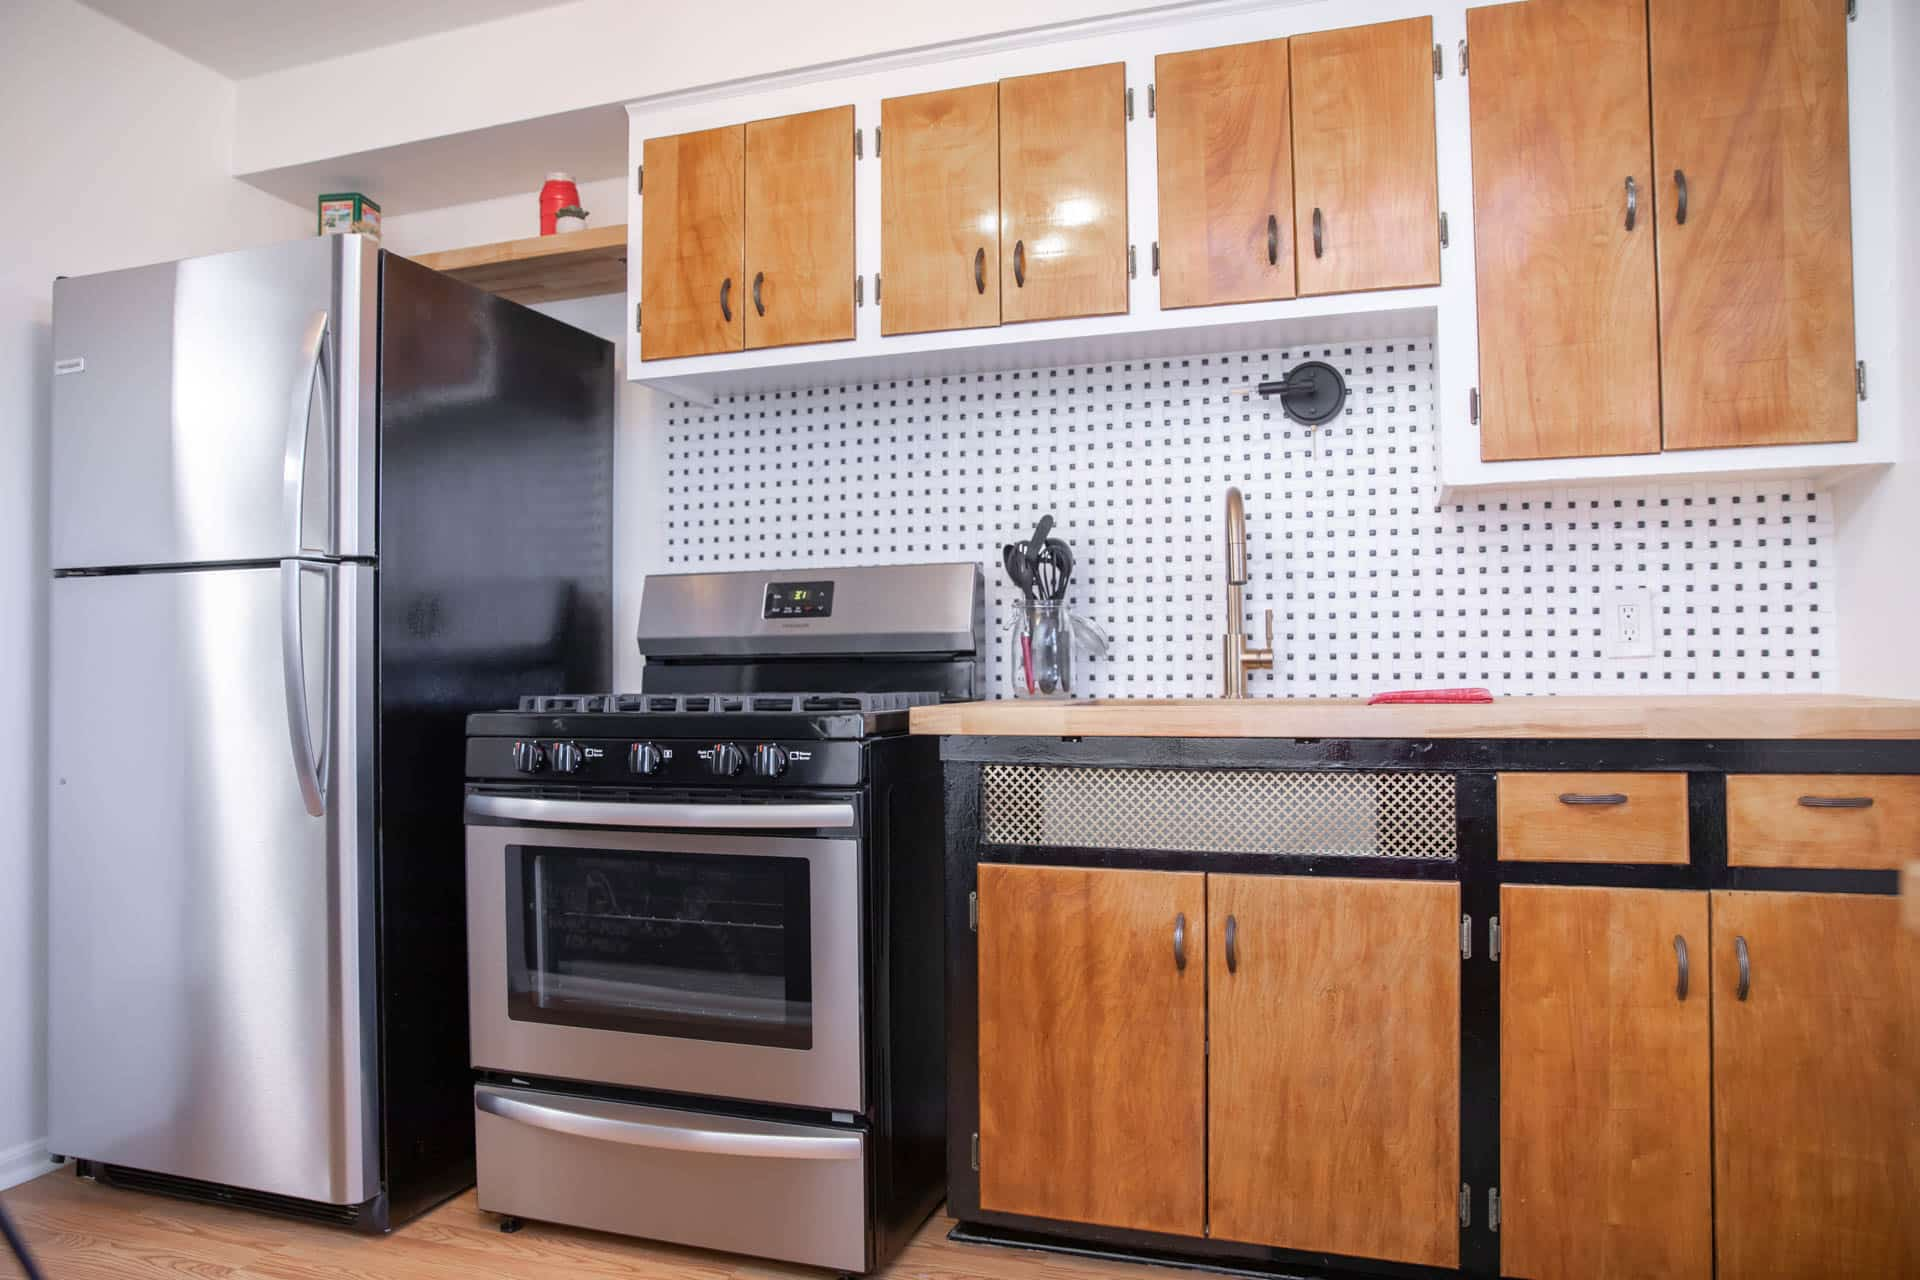 Airbnb_Kitchen_Upgrade_On_A_Budget_No_Renovation_Needed